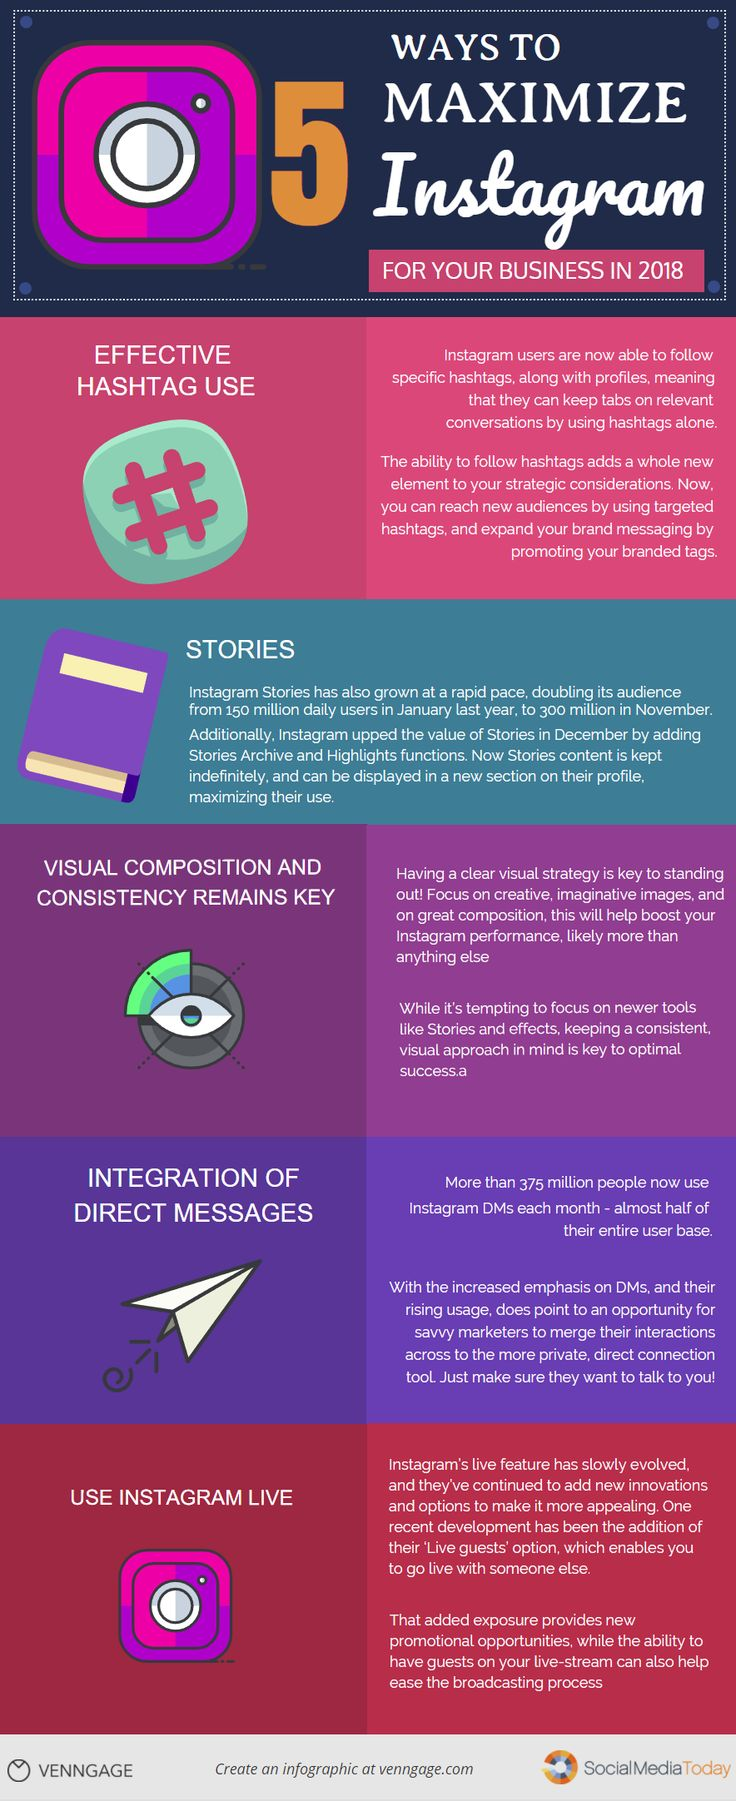 5 Ways to Maximize Instagram for Your Business in 2018 [Infographic] | Social Media Today